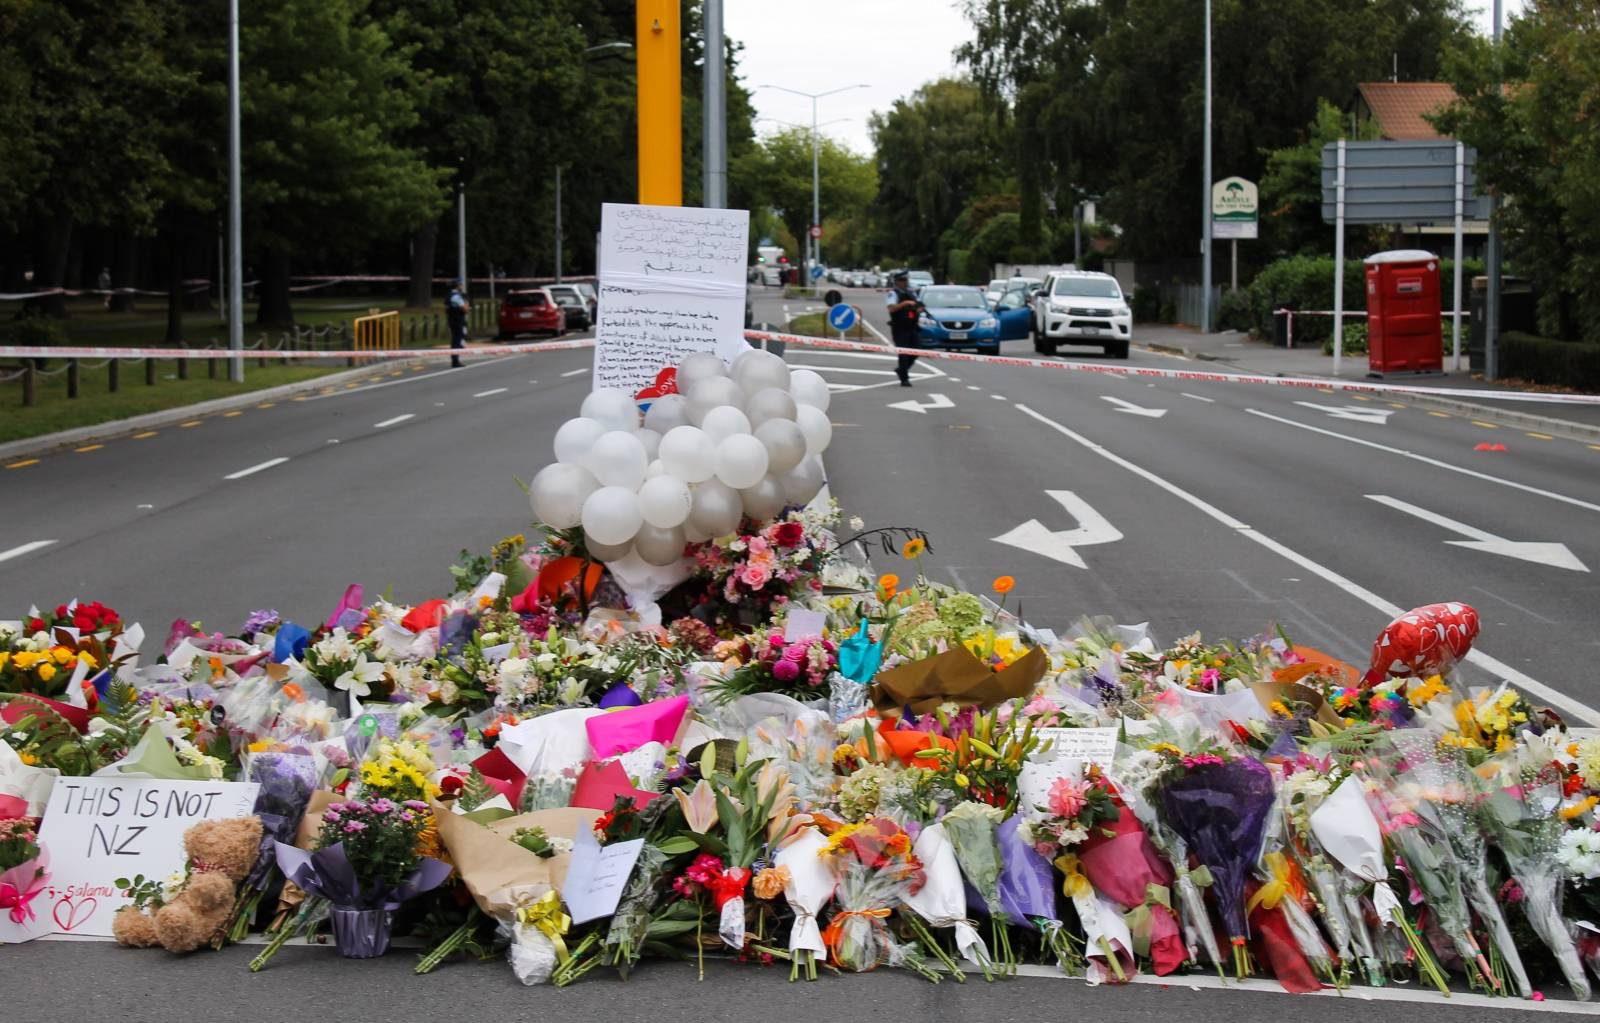 After attack on mosques in New Zealand - mourning